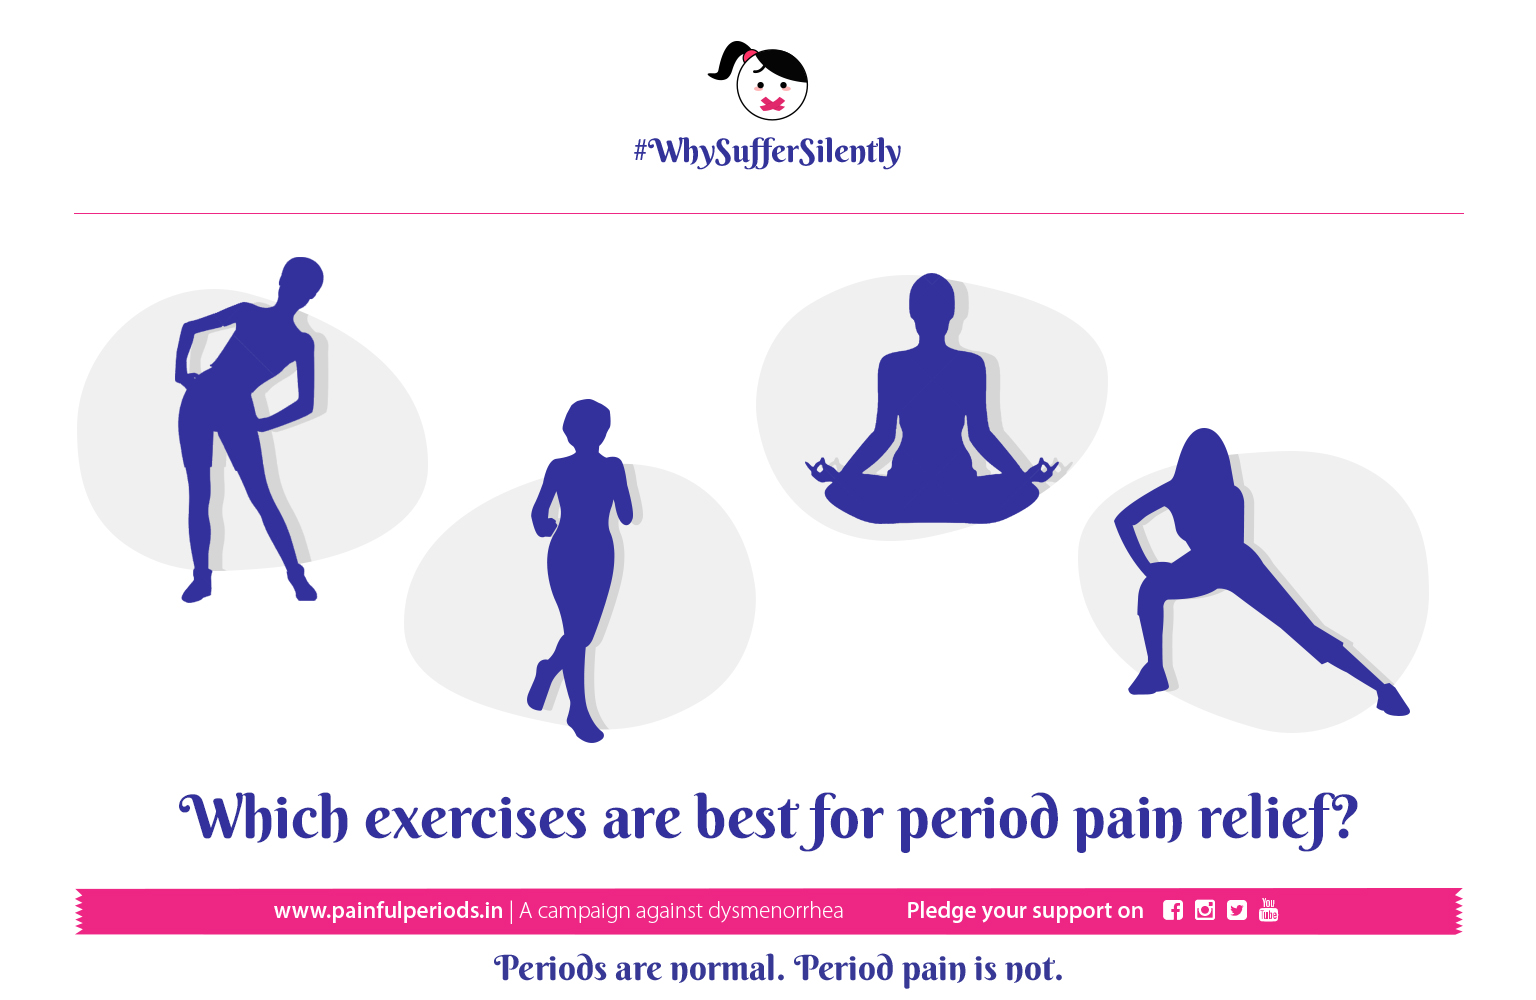 #WhySufferSilently - Reduce Period Pain